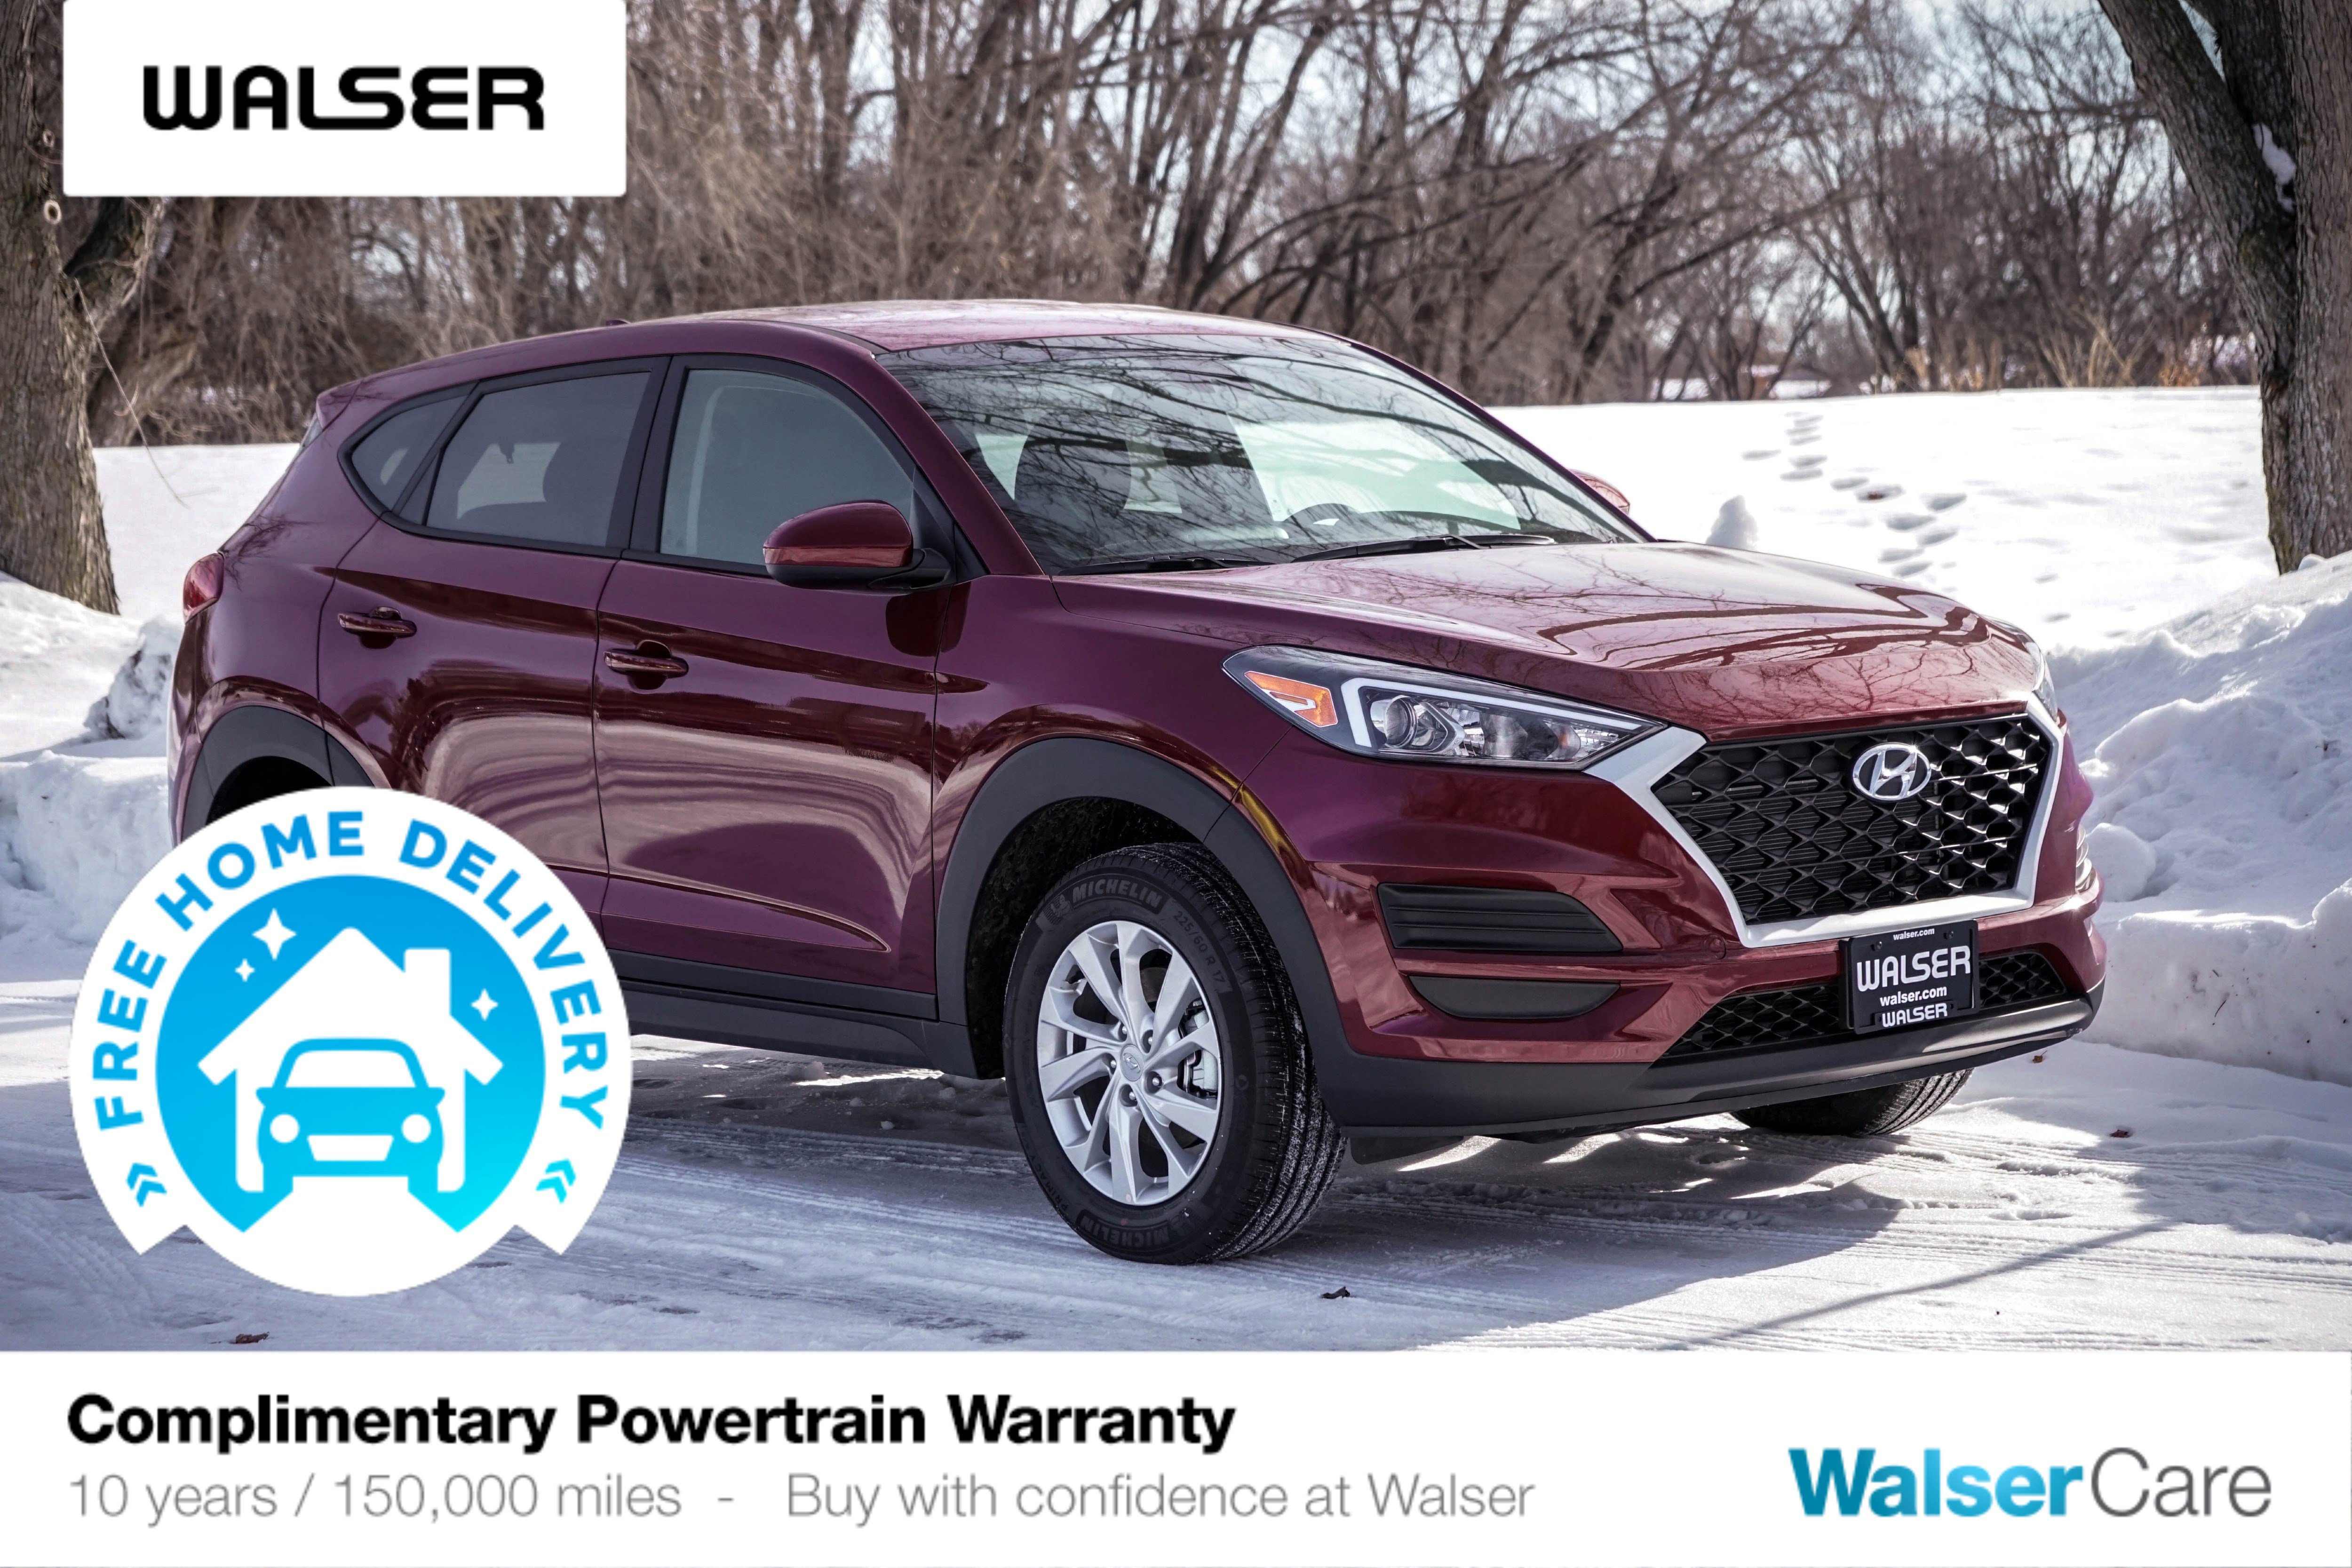 2020 Hyundai Tucson SE AWD Lease Deals